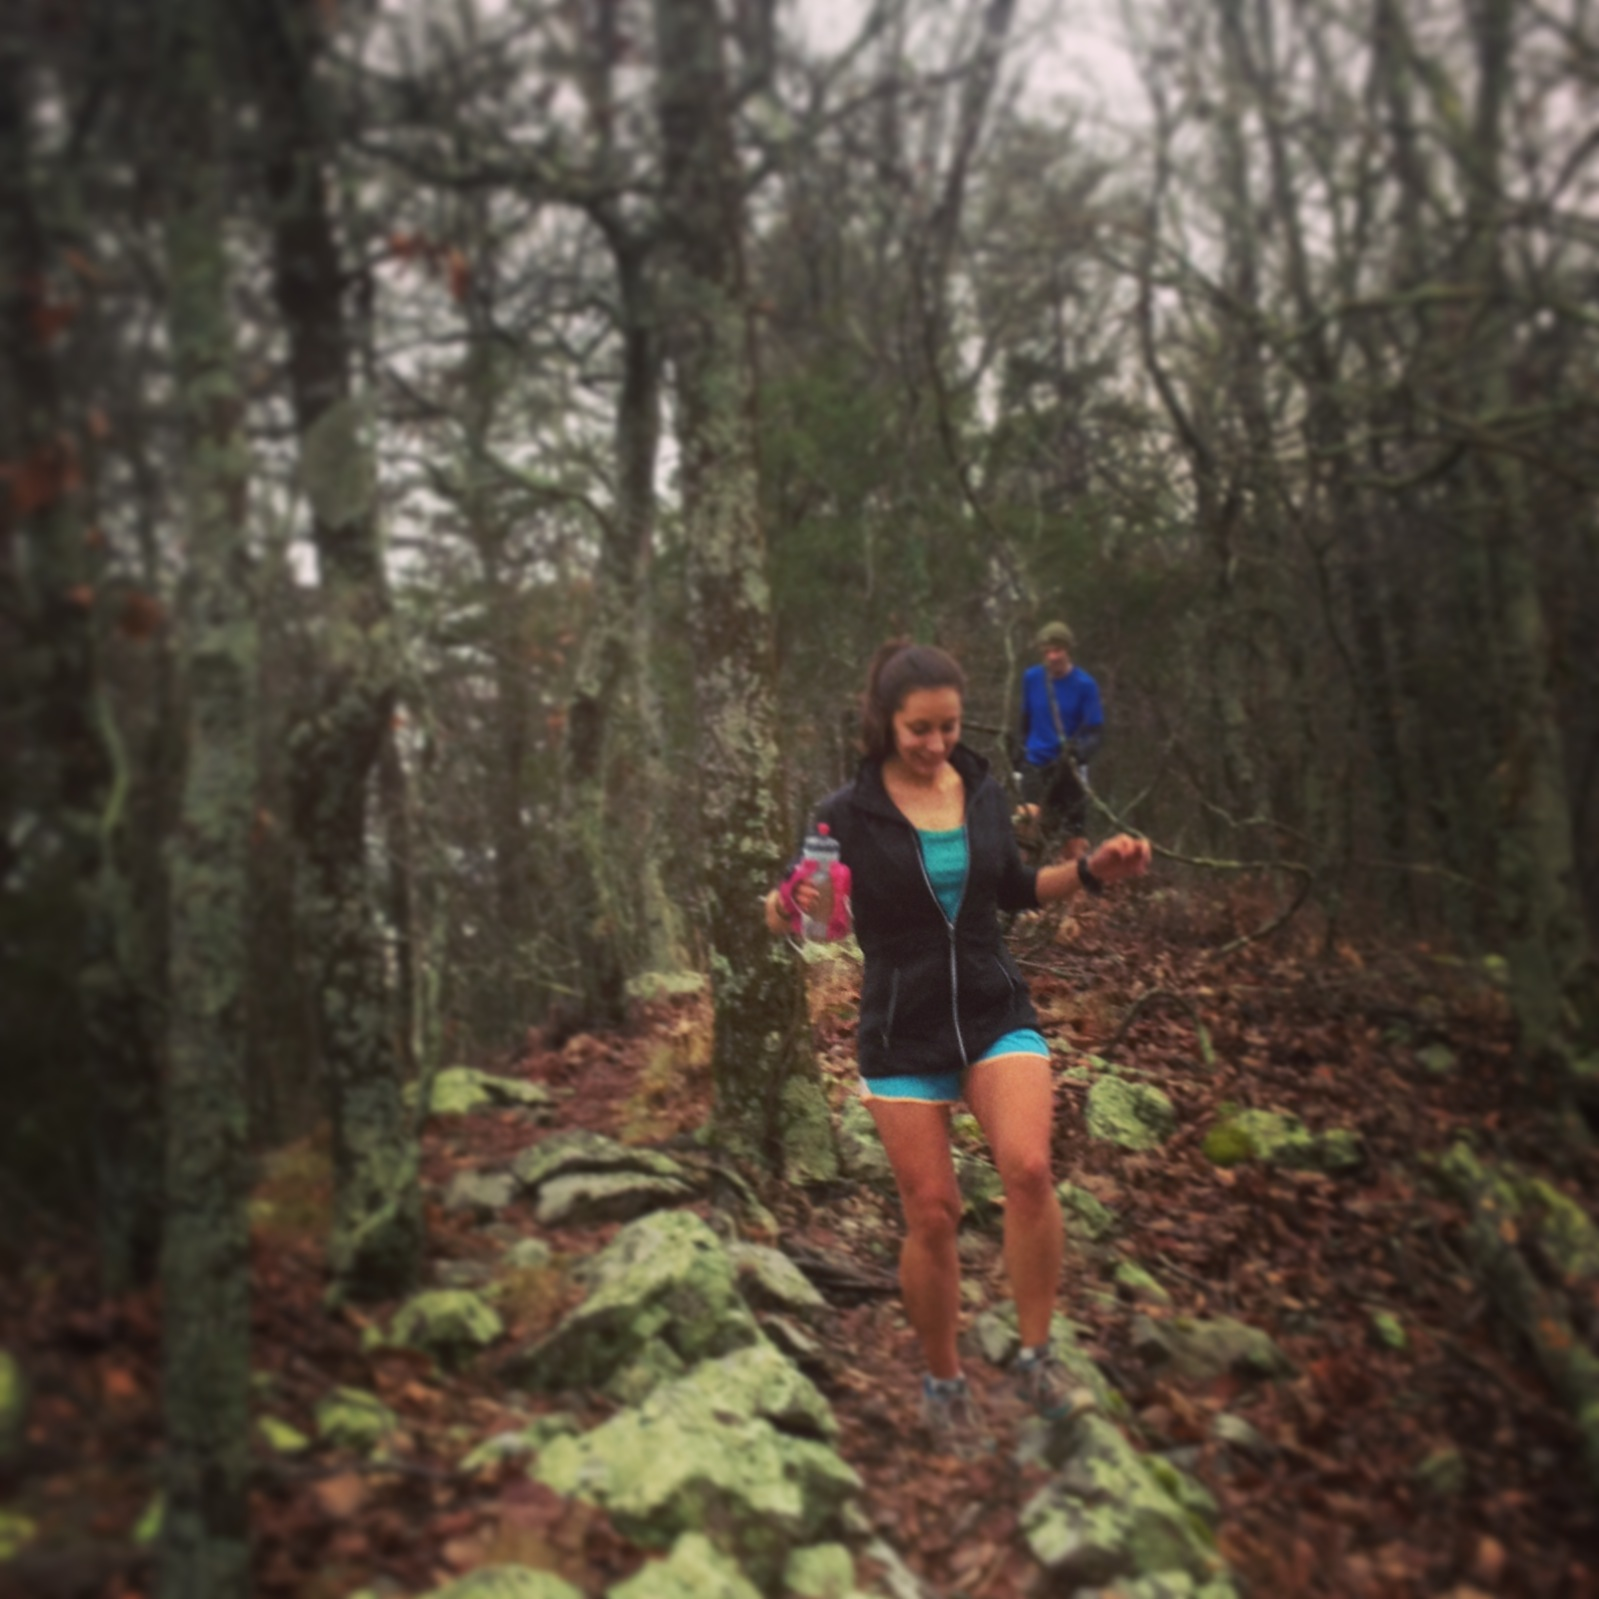 Oak Mountain State Park, Pelham, trail running, 50k training, ultra running